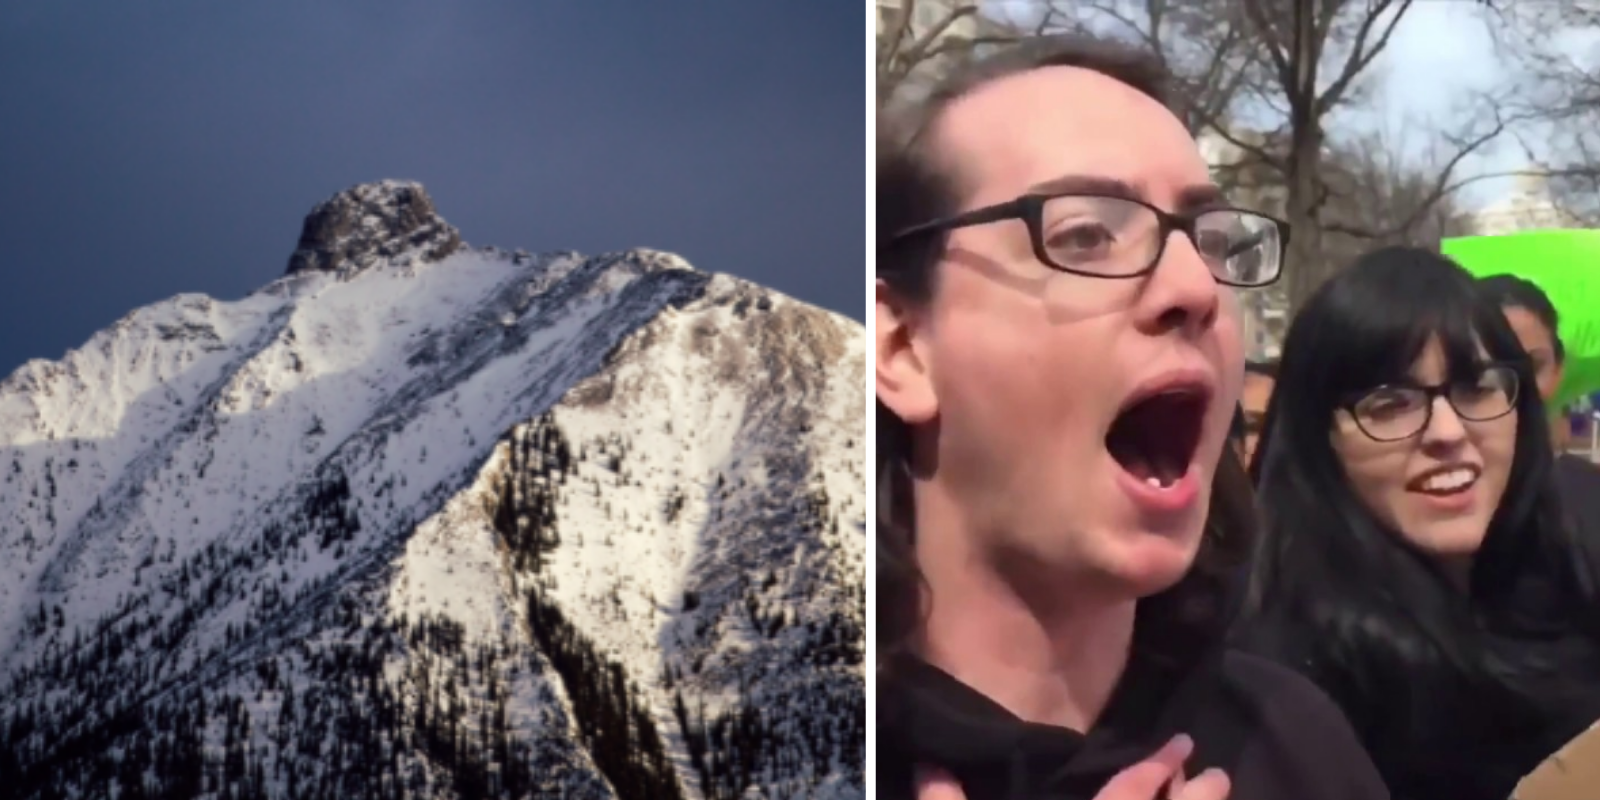 Canadian activists seek to change names of 'racist' and 'sexist' mountains